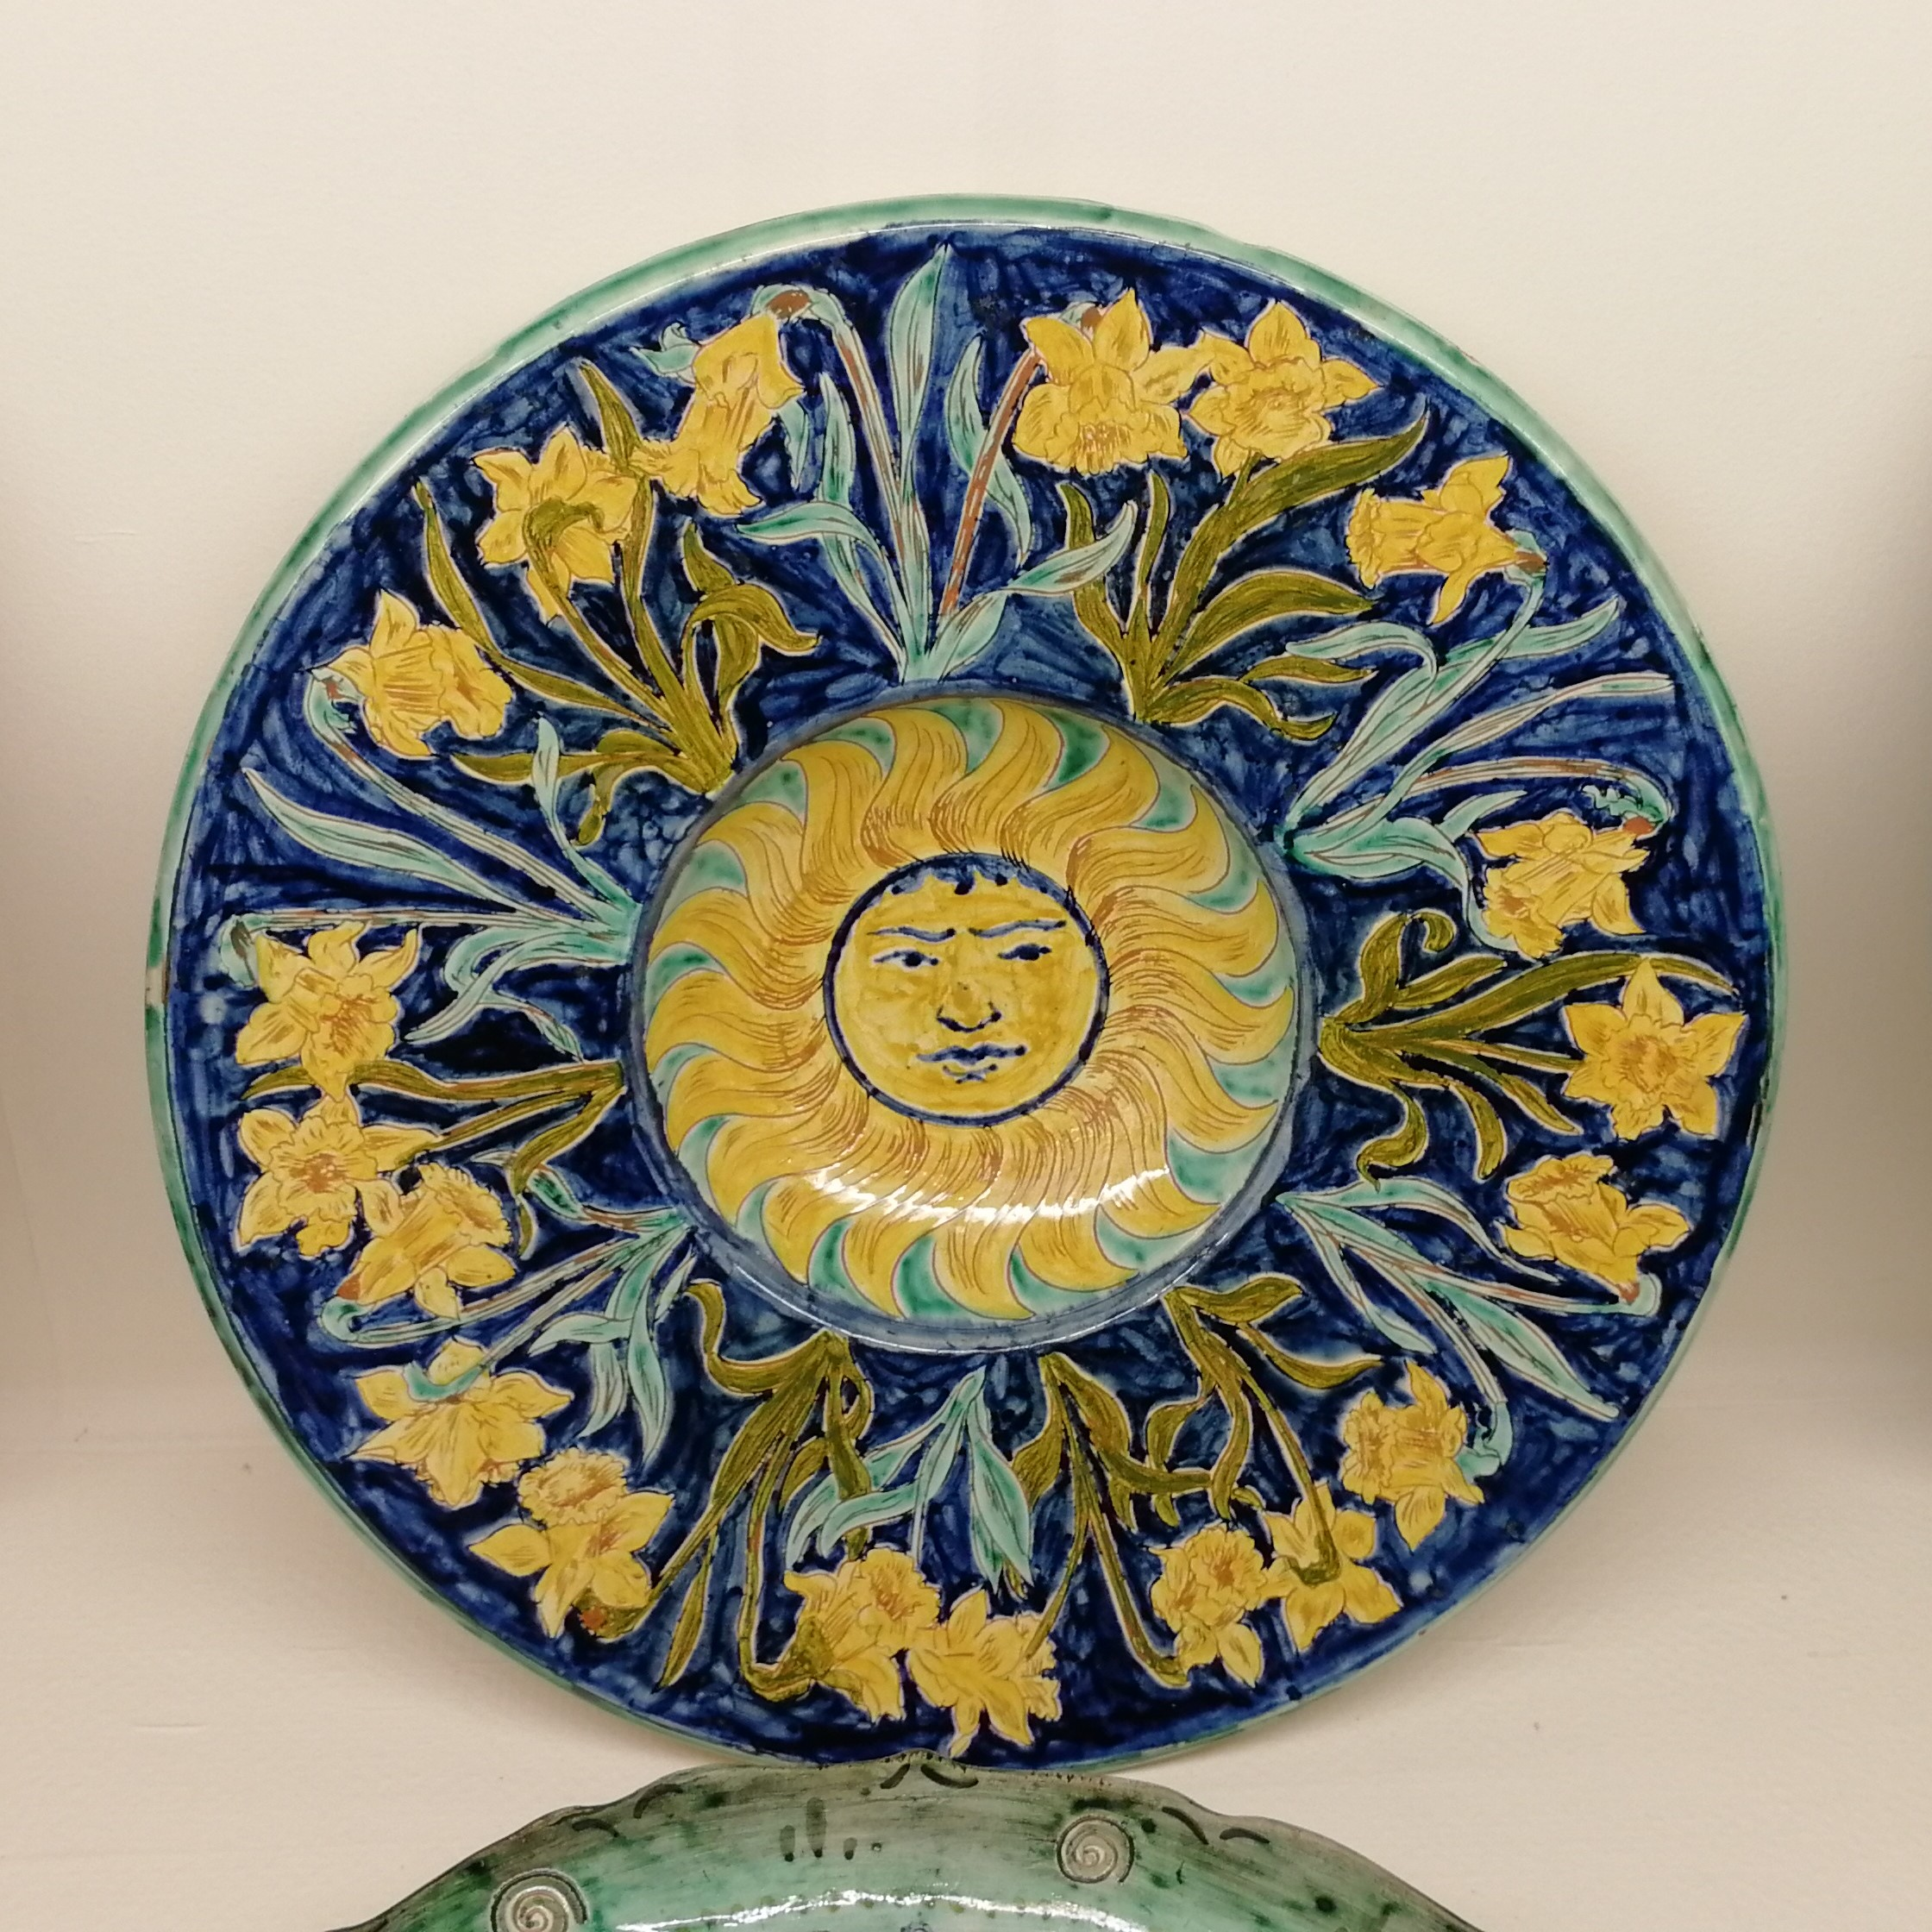 a decorative plate. In the centre is a bright yellow sun with a human face. Around the outside of this is a dark blue background decorated with yellow and green daffodils